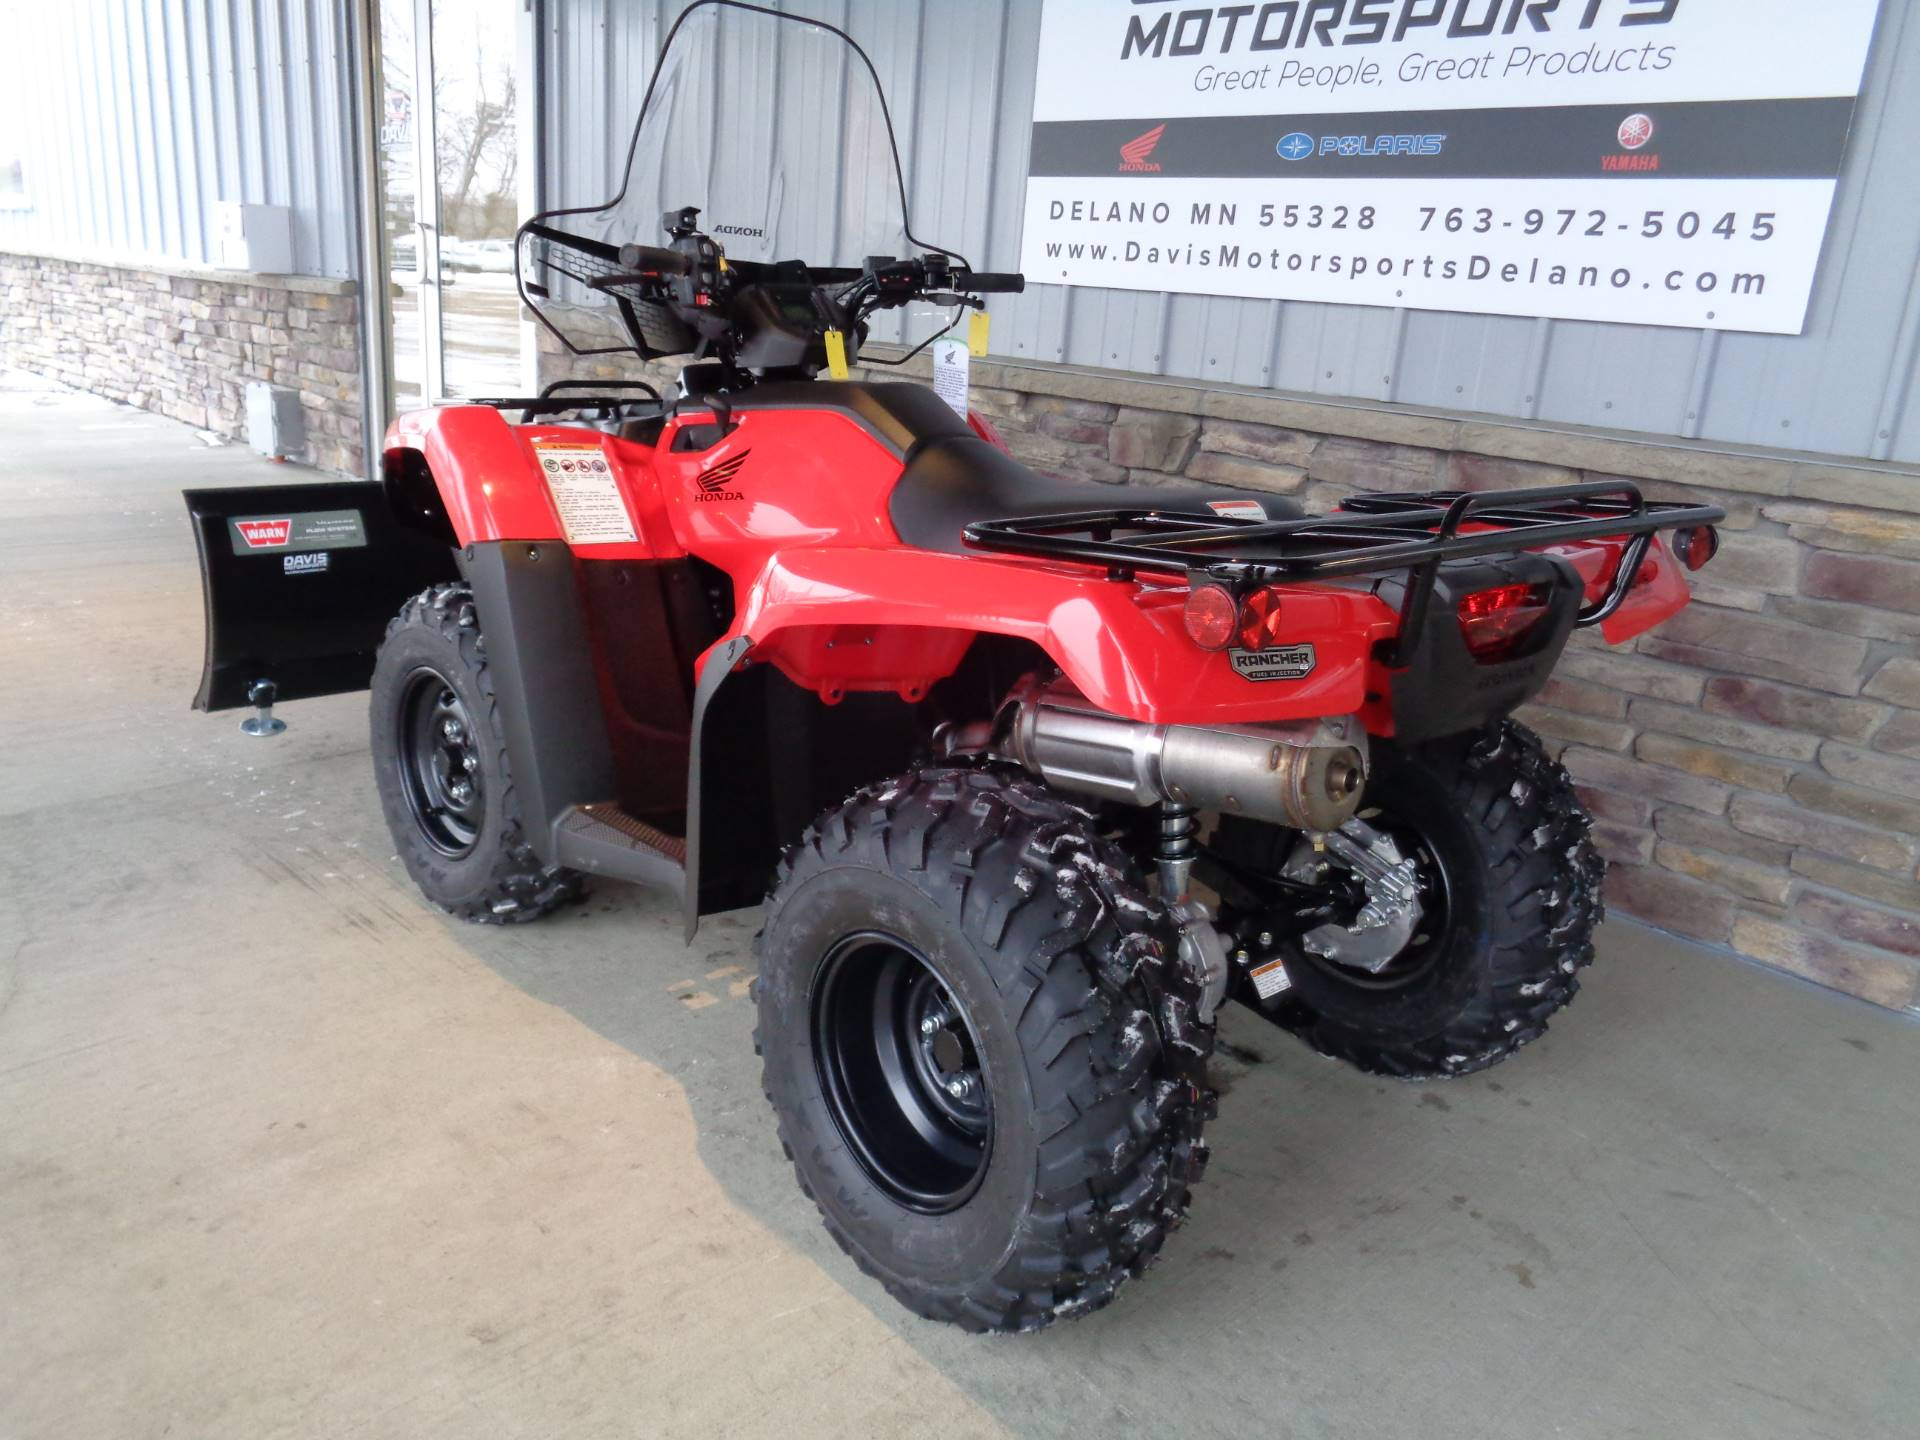 2019 Honda FourTrax Rancher 4x4 ES in Delano, Minnesota - Photo 6